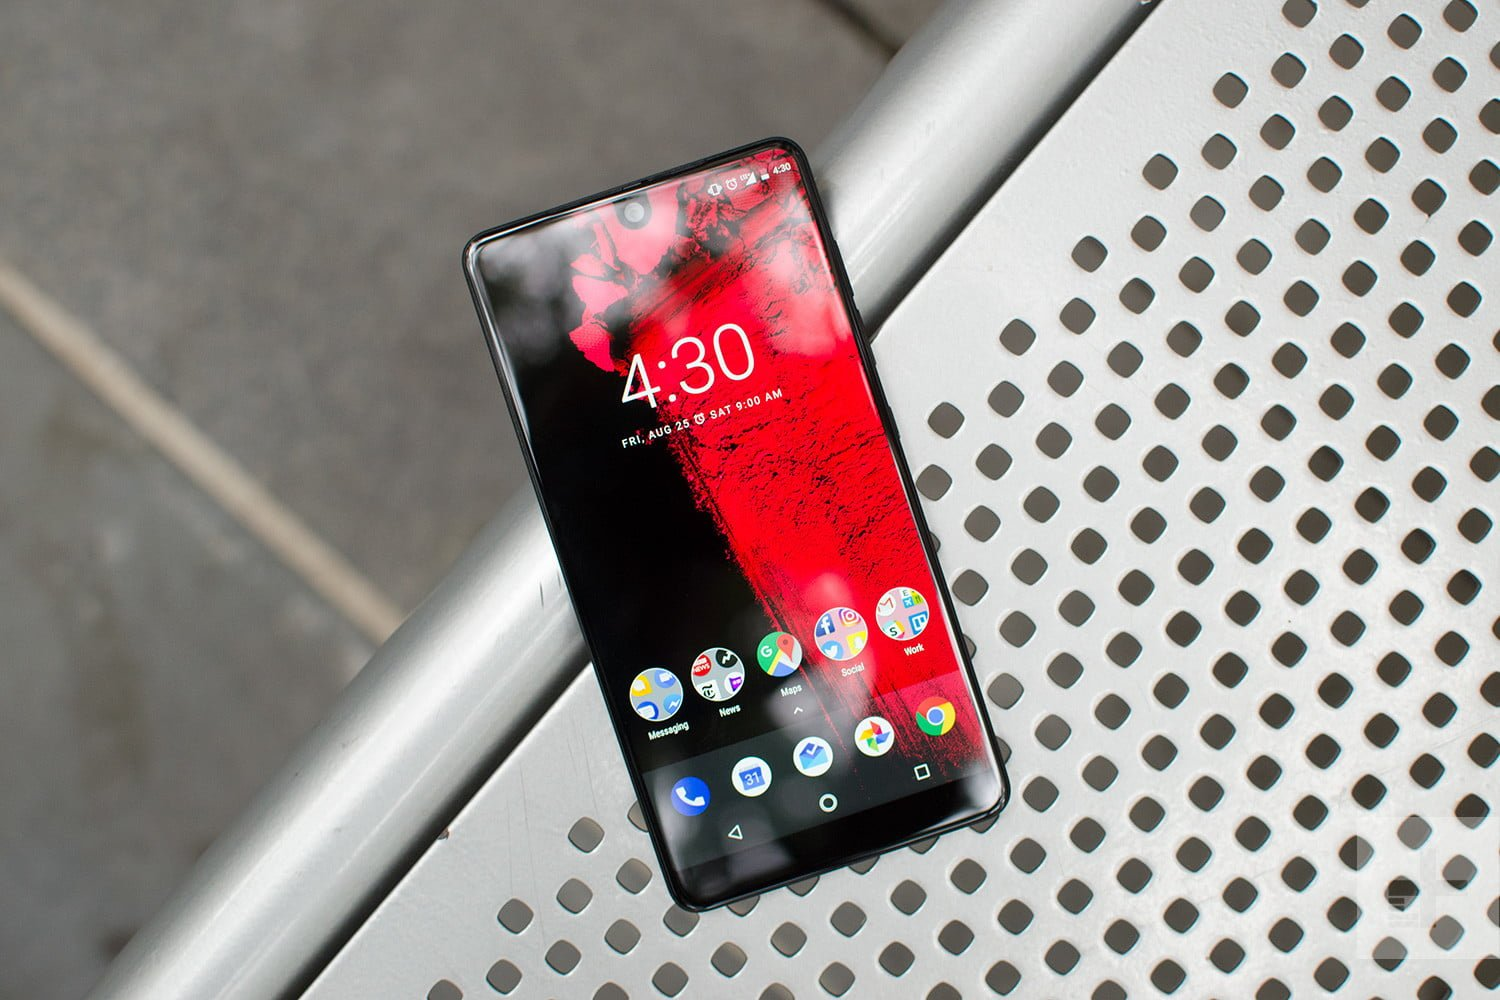 andy rubin, andy rubin phone, andy rubin esential, essential phone, andy rubin new phone